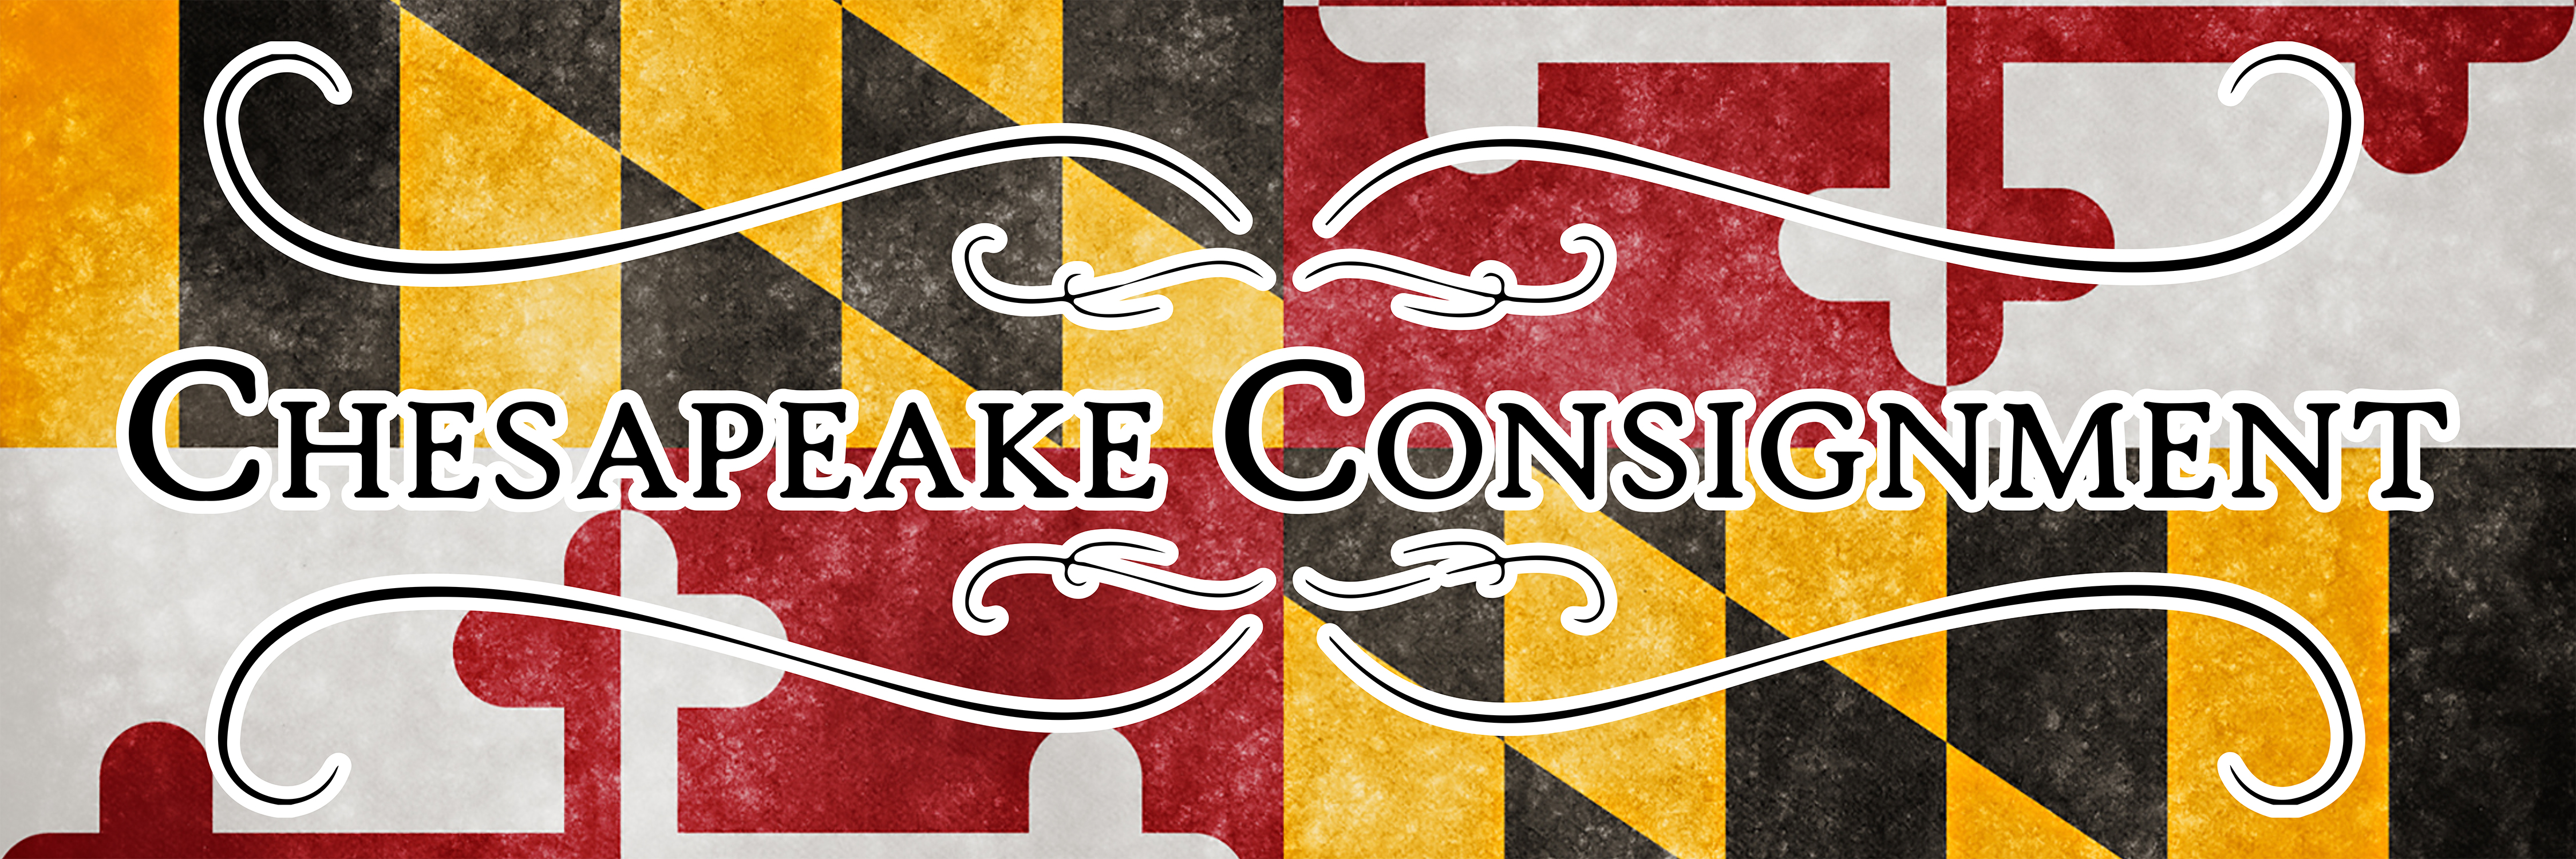 consignment-full-maryland-flag